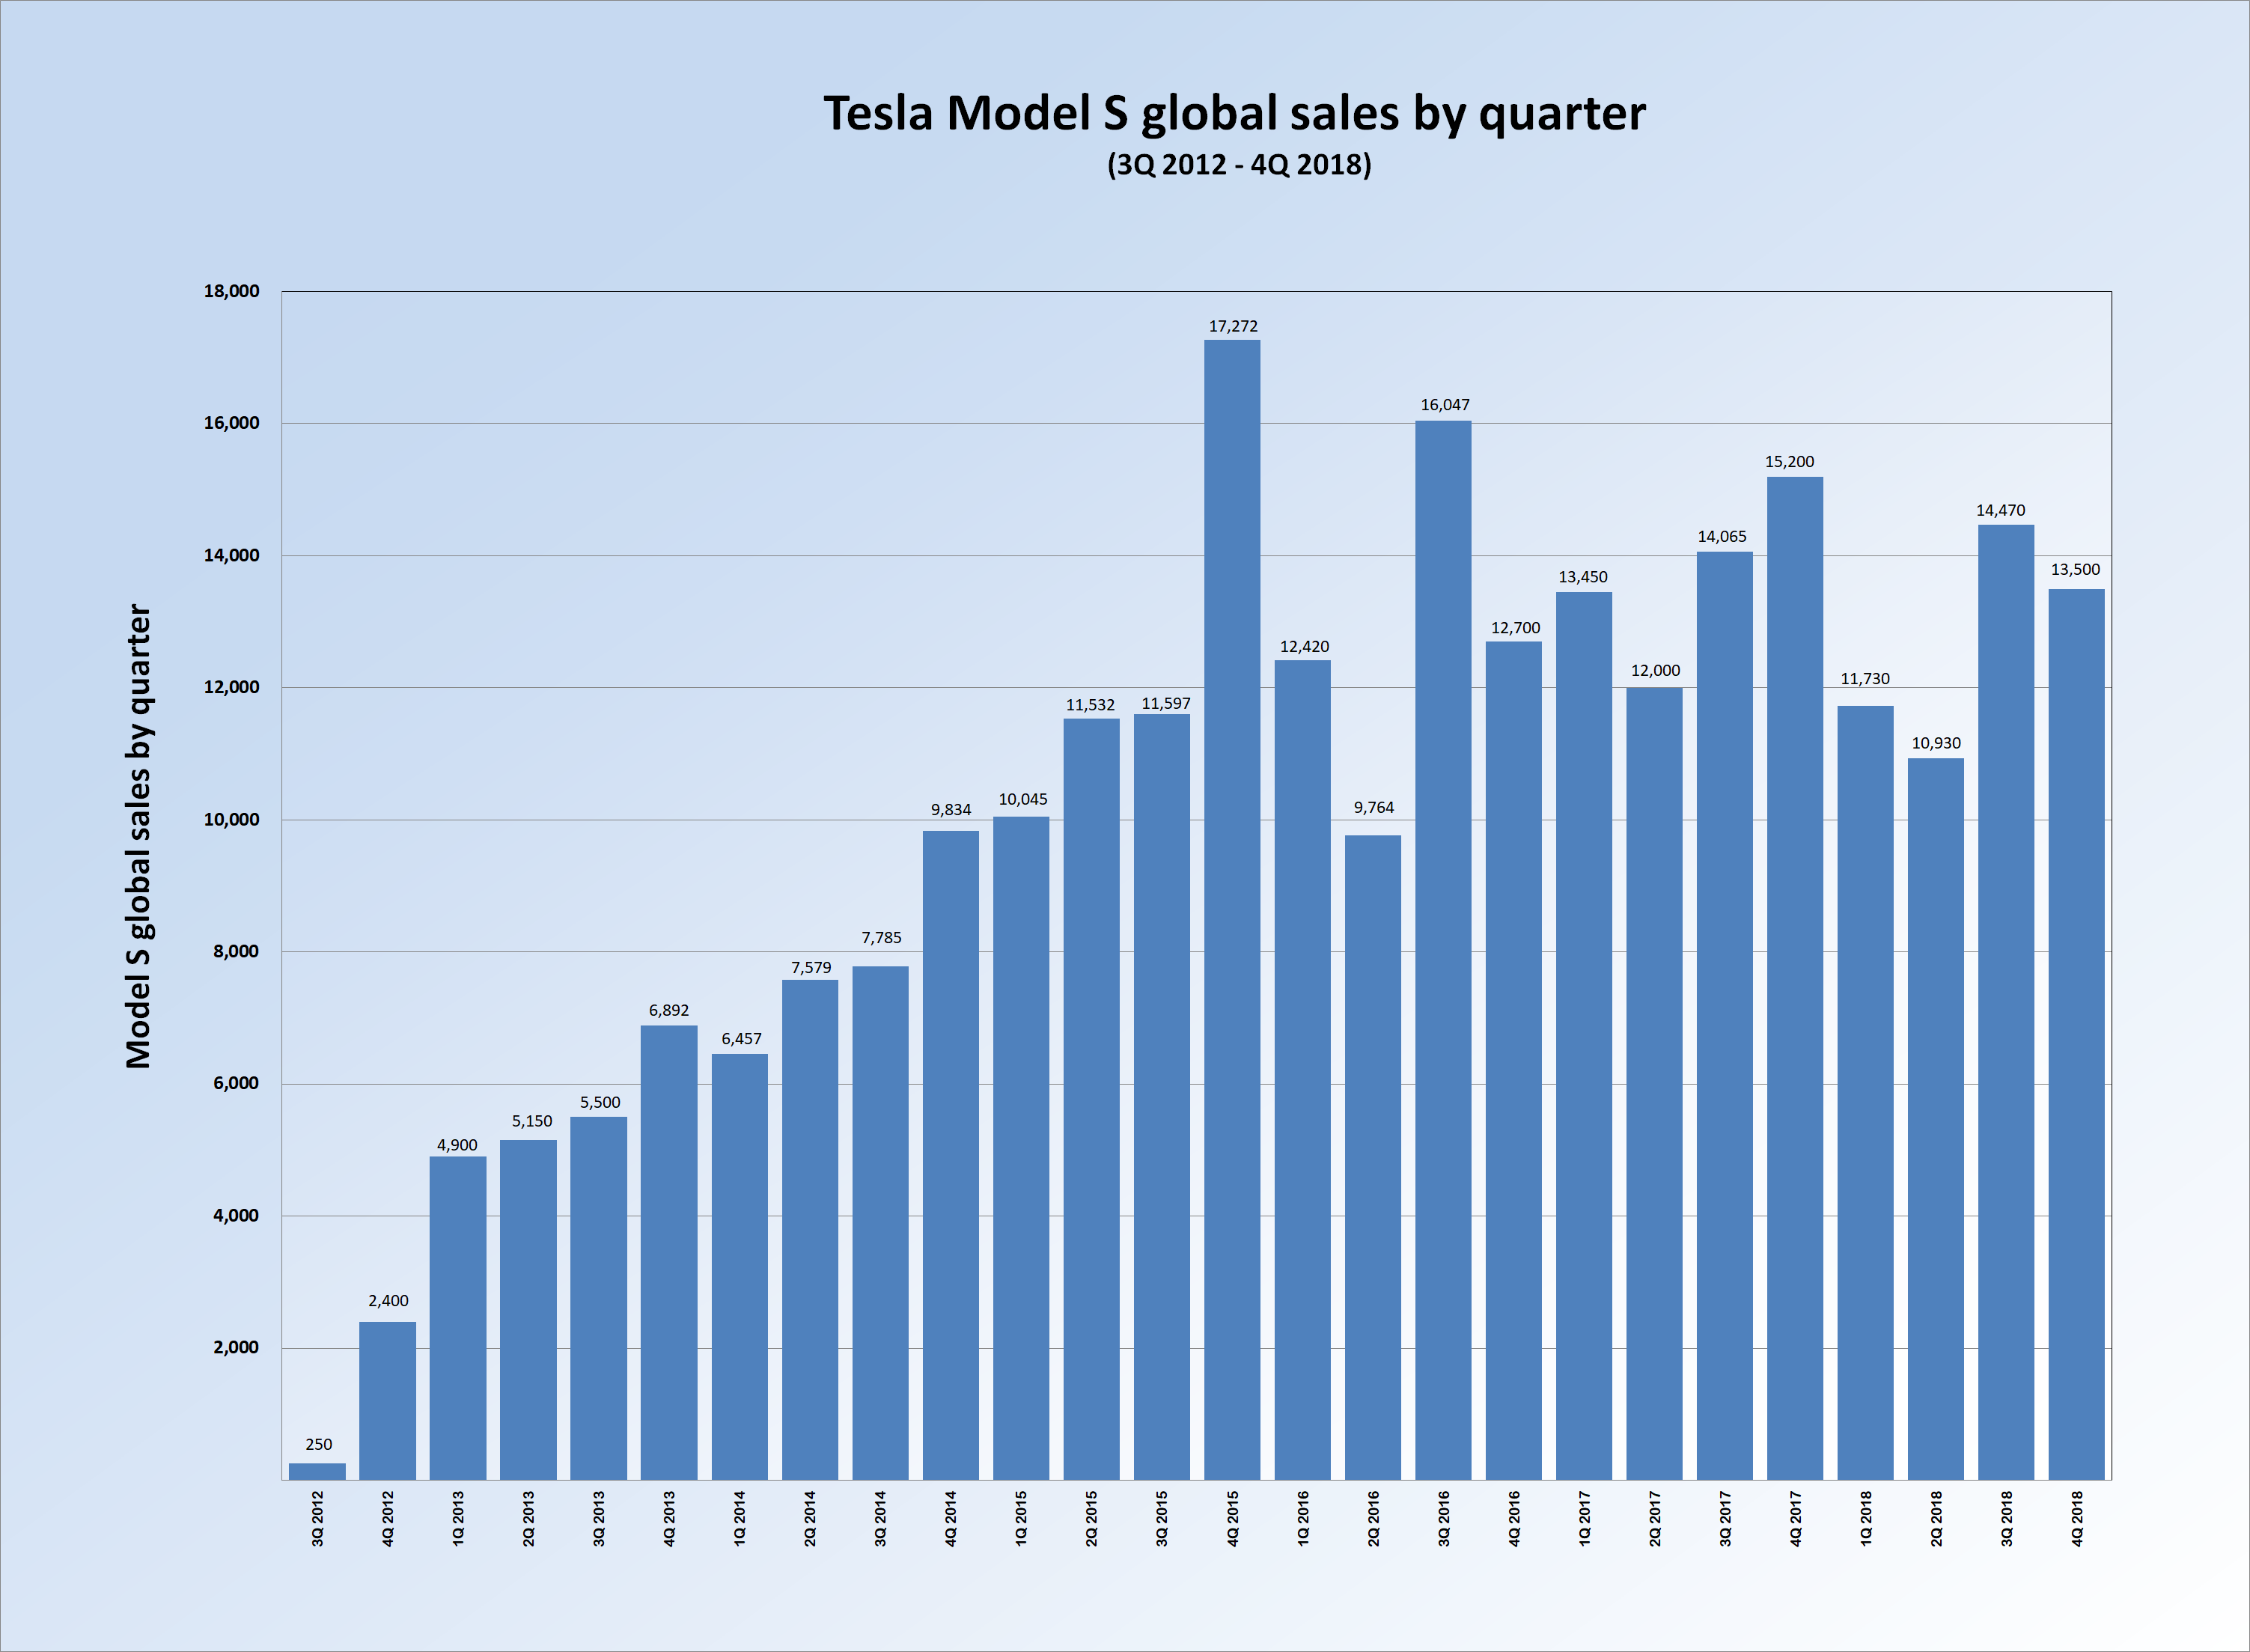 Global_sales_Tesla_Model_S_by_quarter.pn